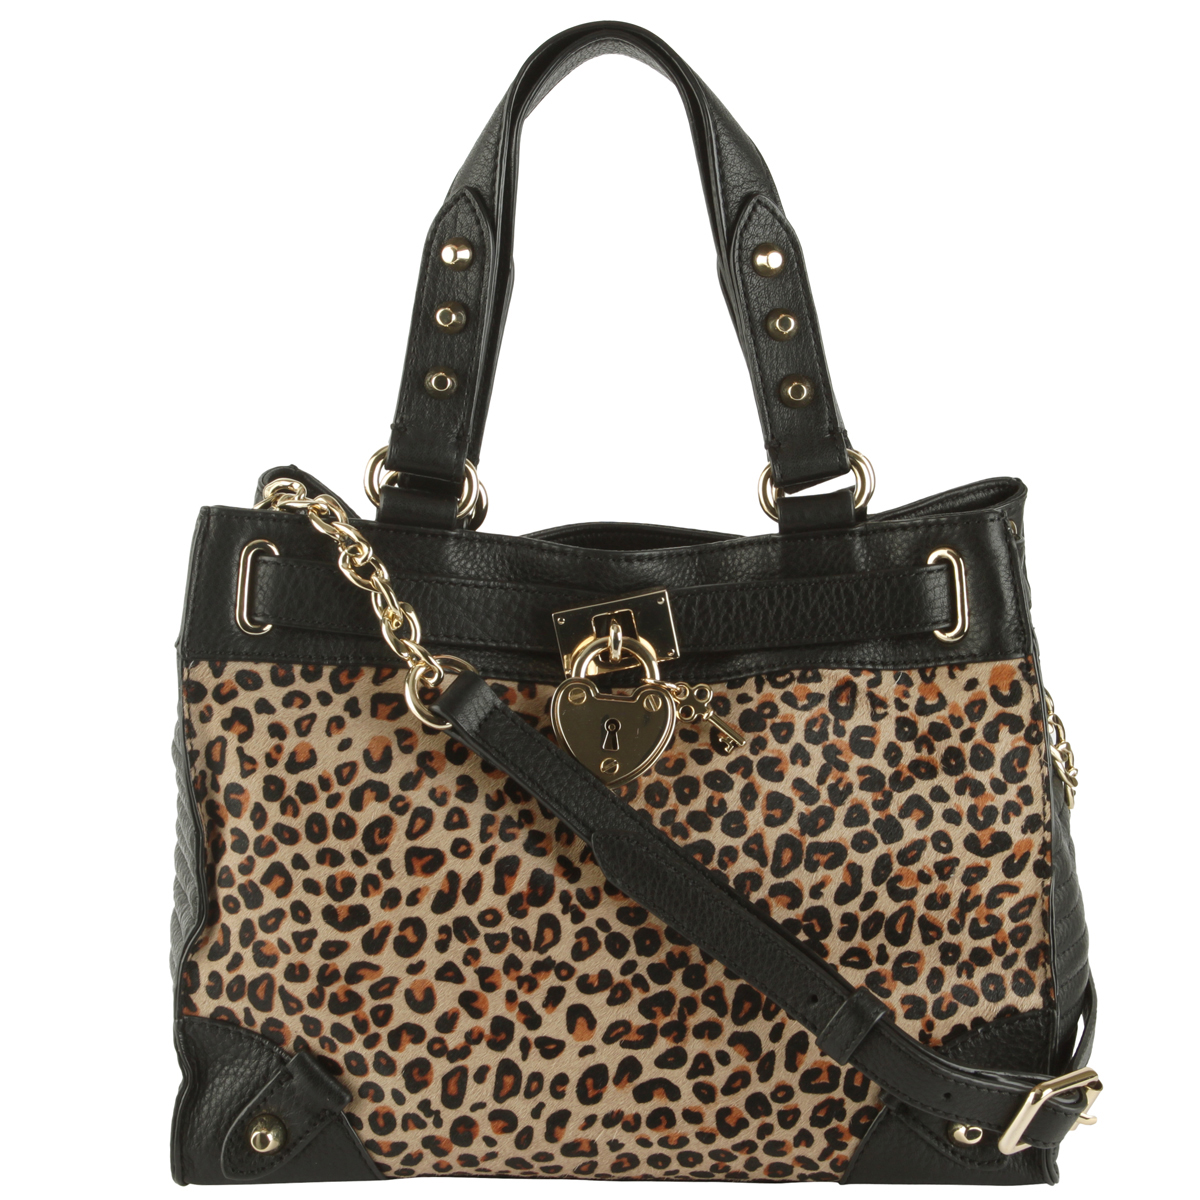 Juicy Couture Robertson Haircalf Leather Mini Daydreamer Bag-Black